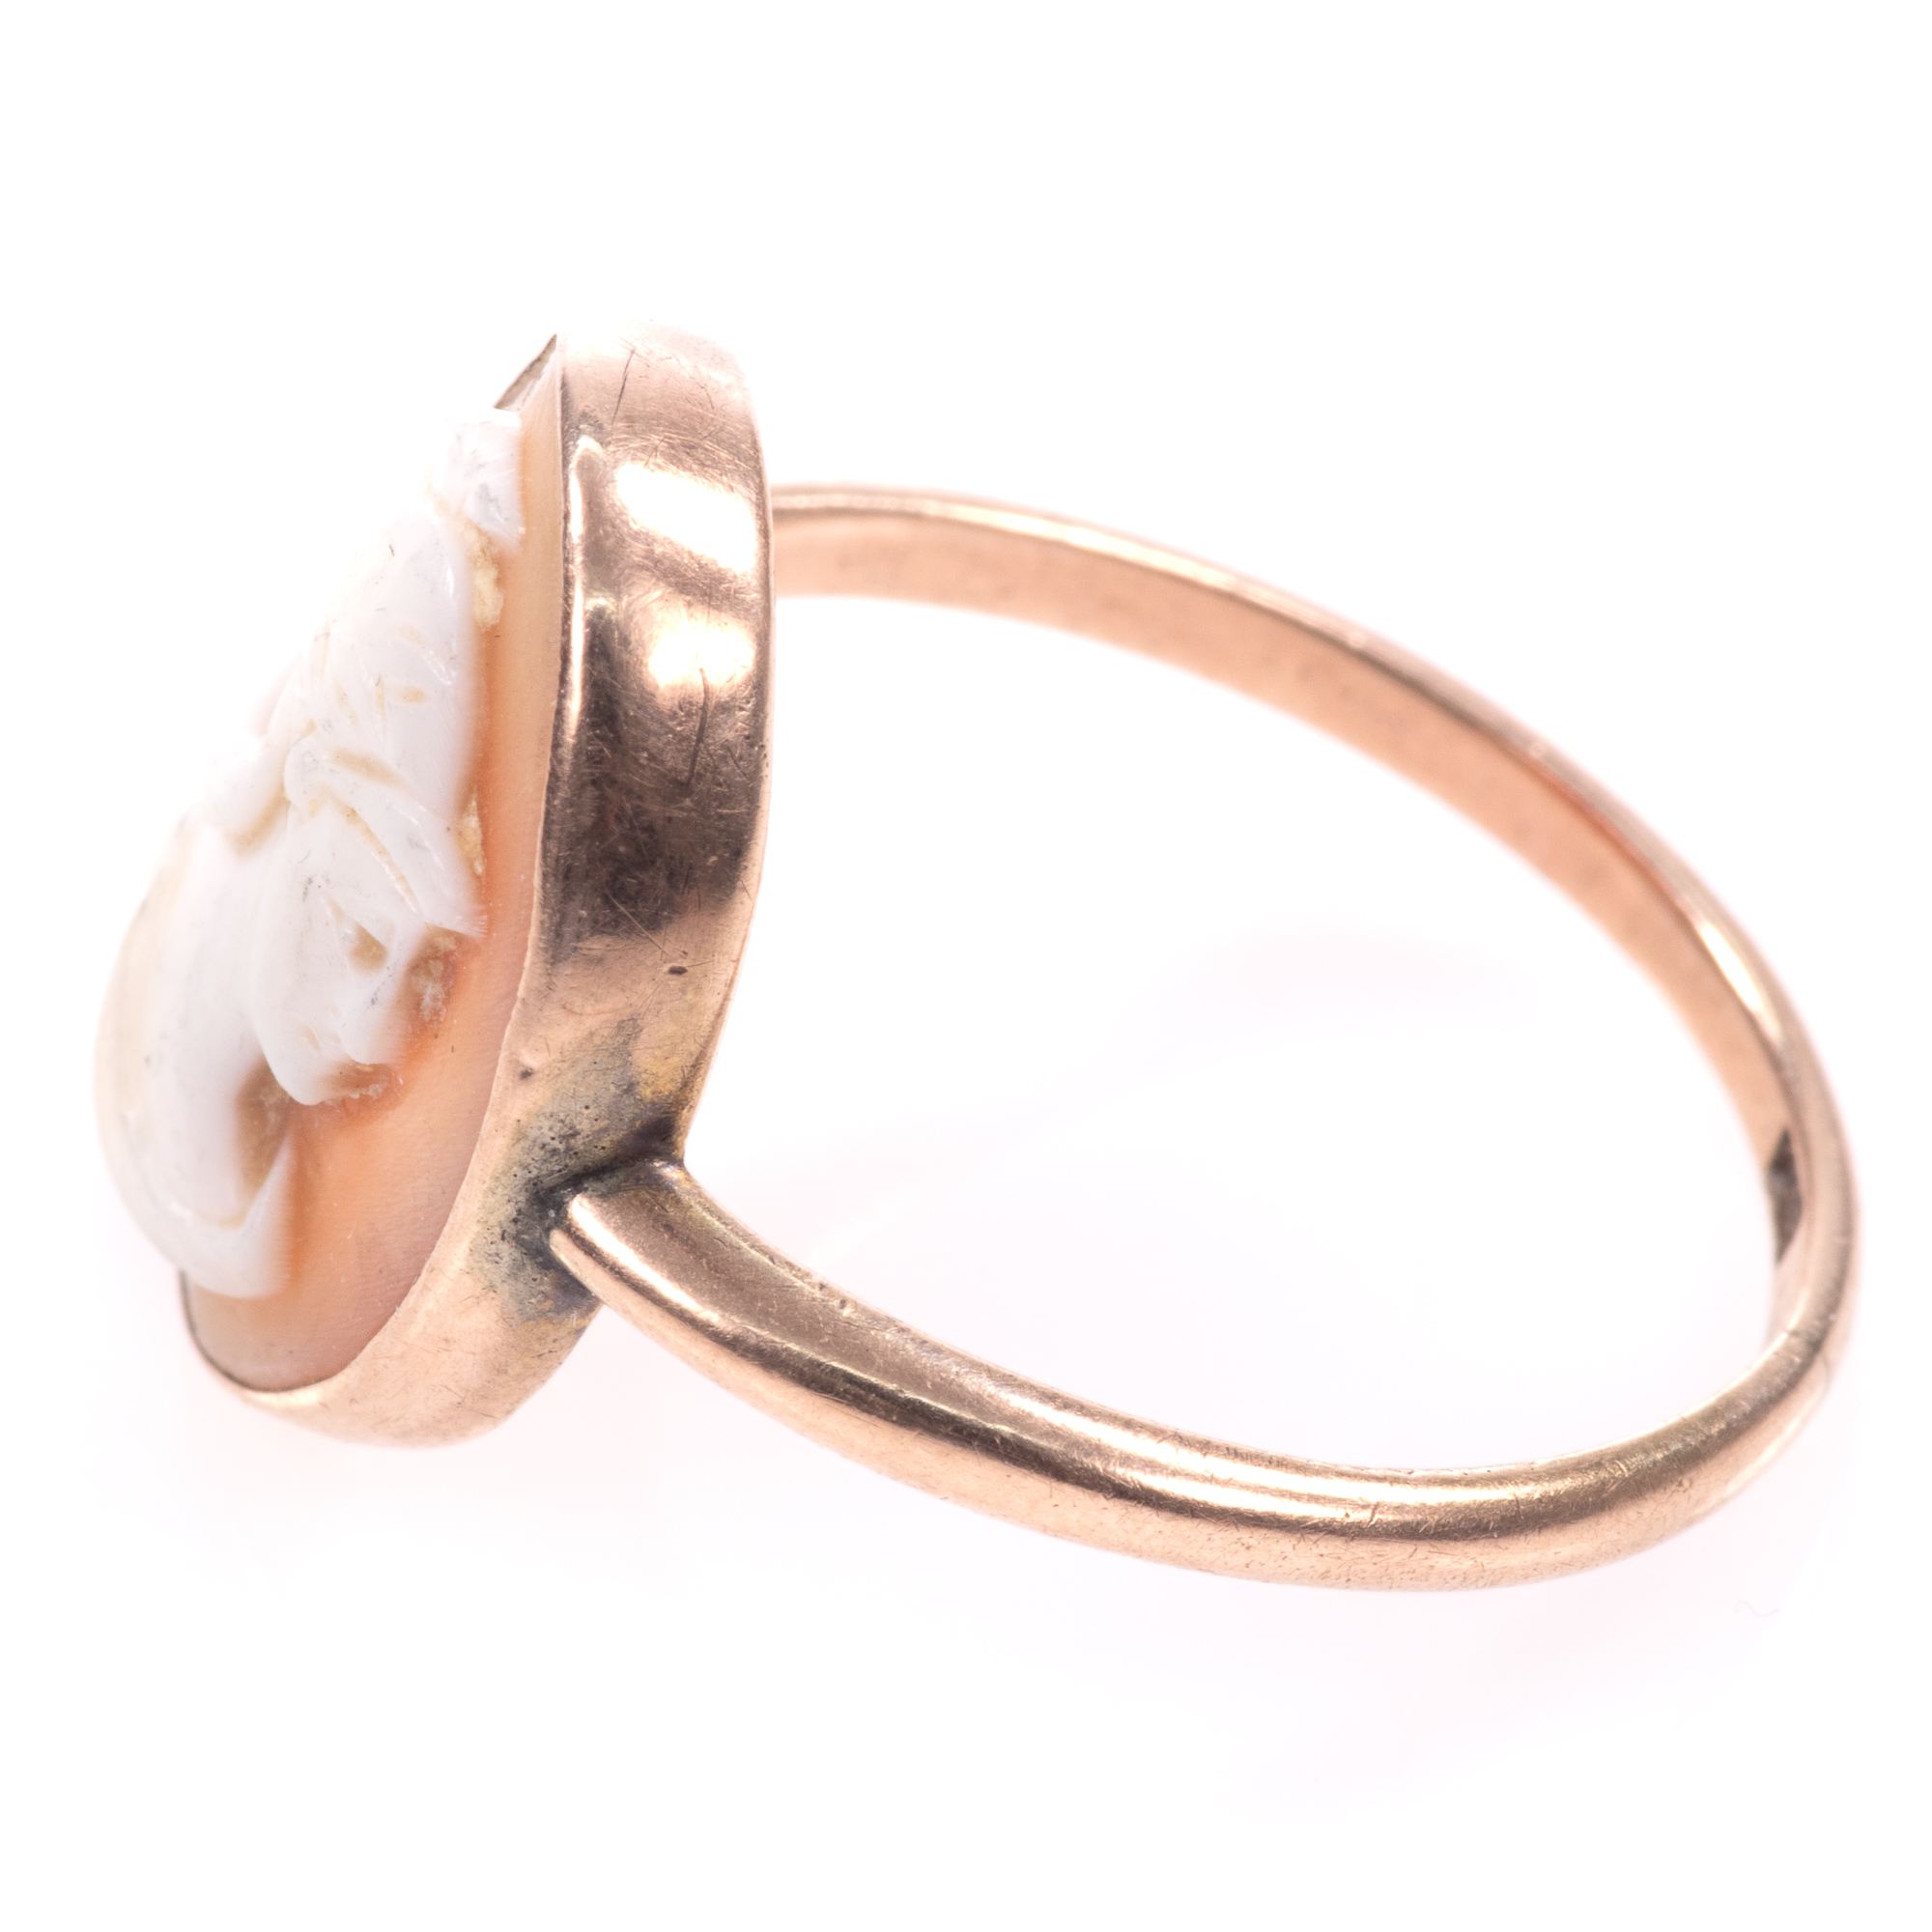 9ct Gold Roman Cameo Ring - Image 4 of 7